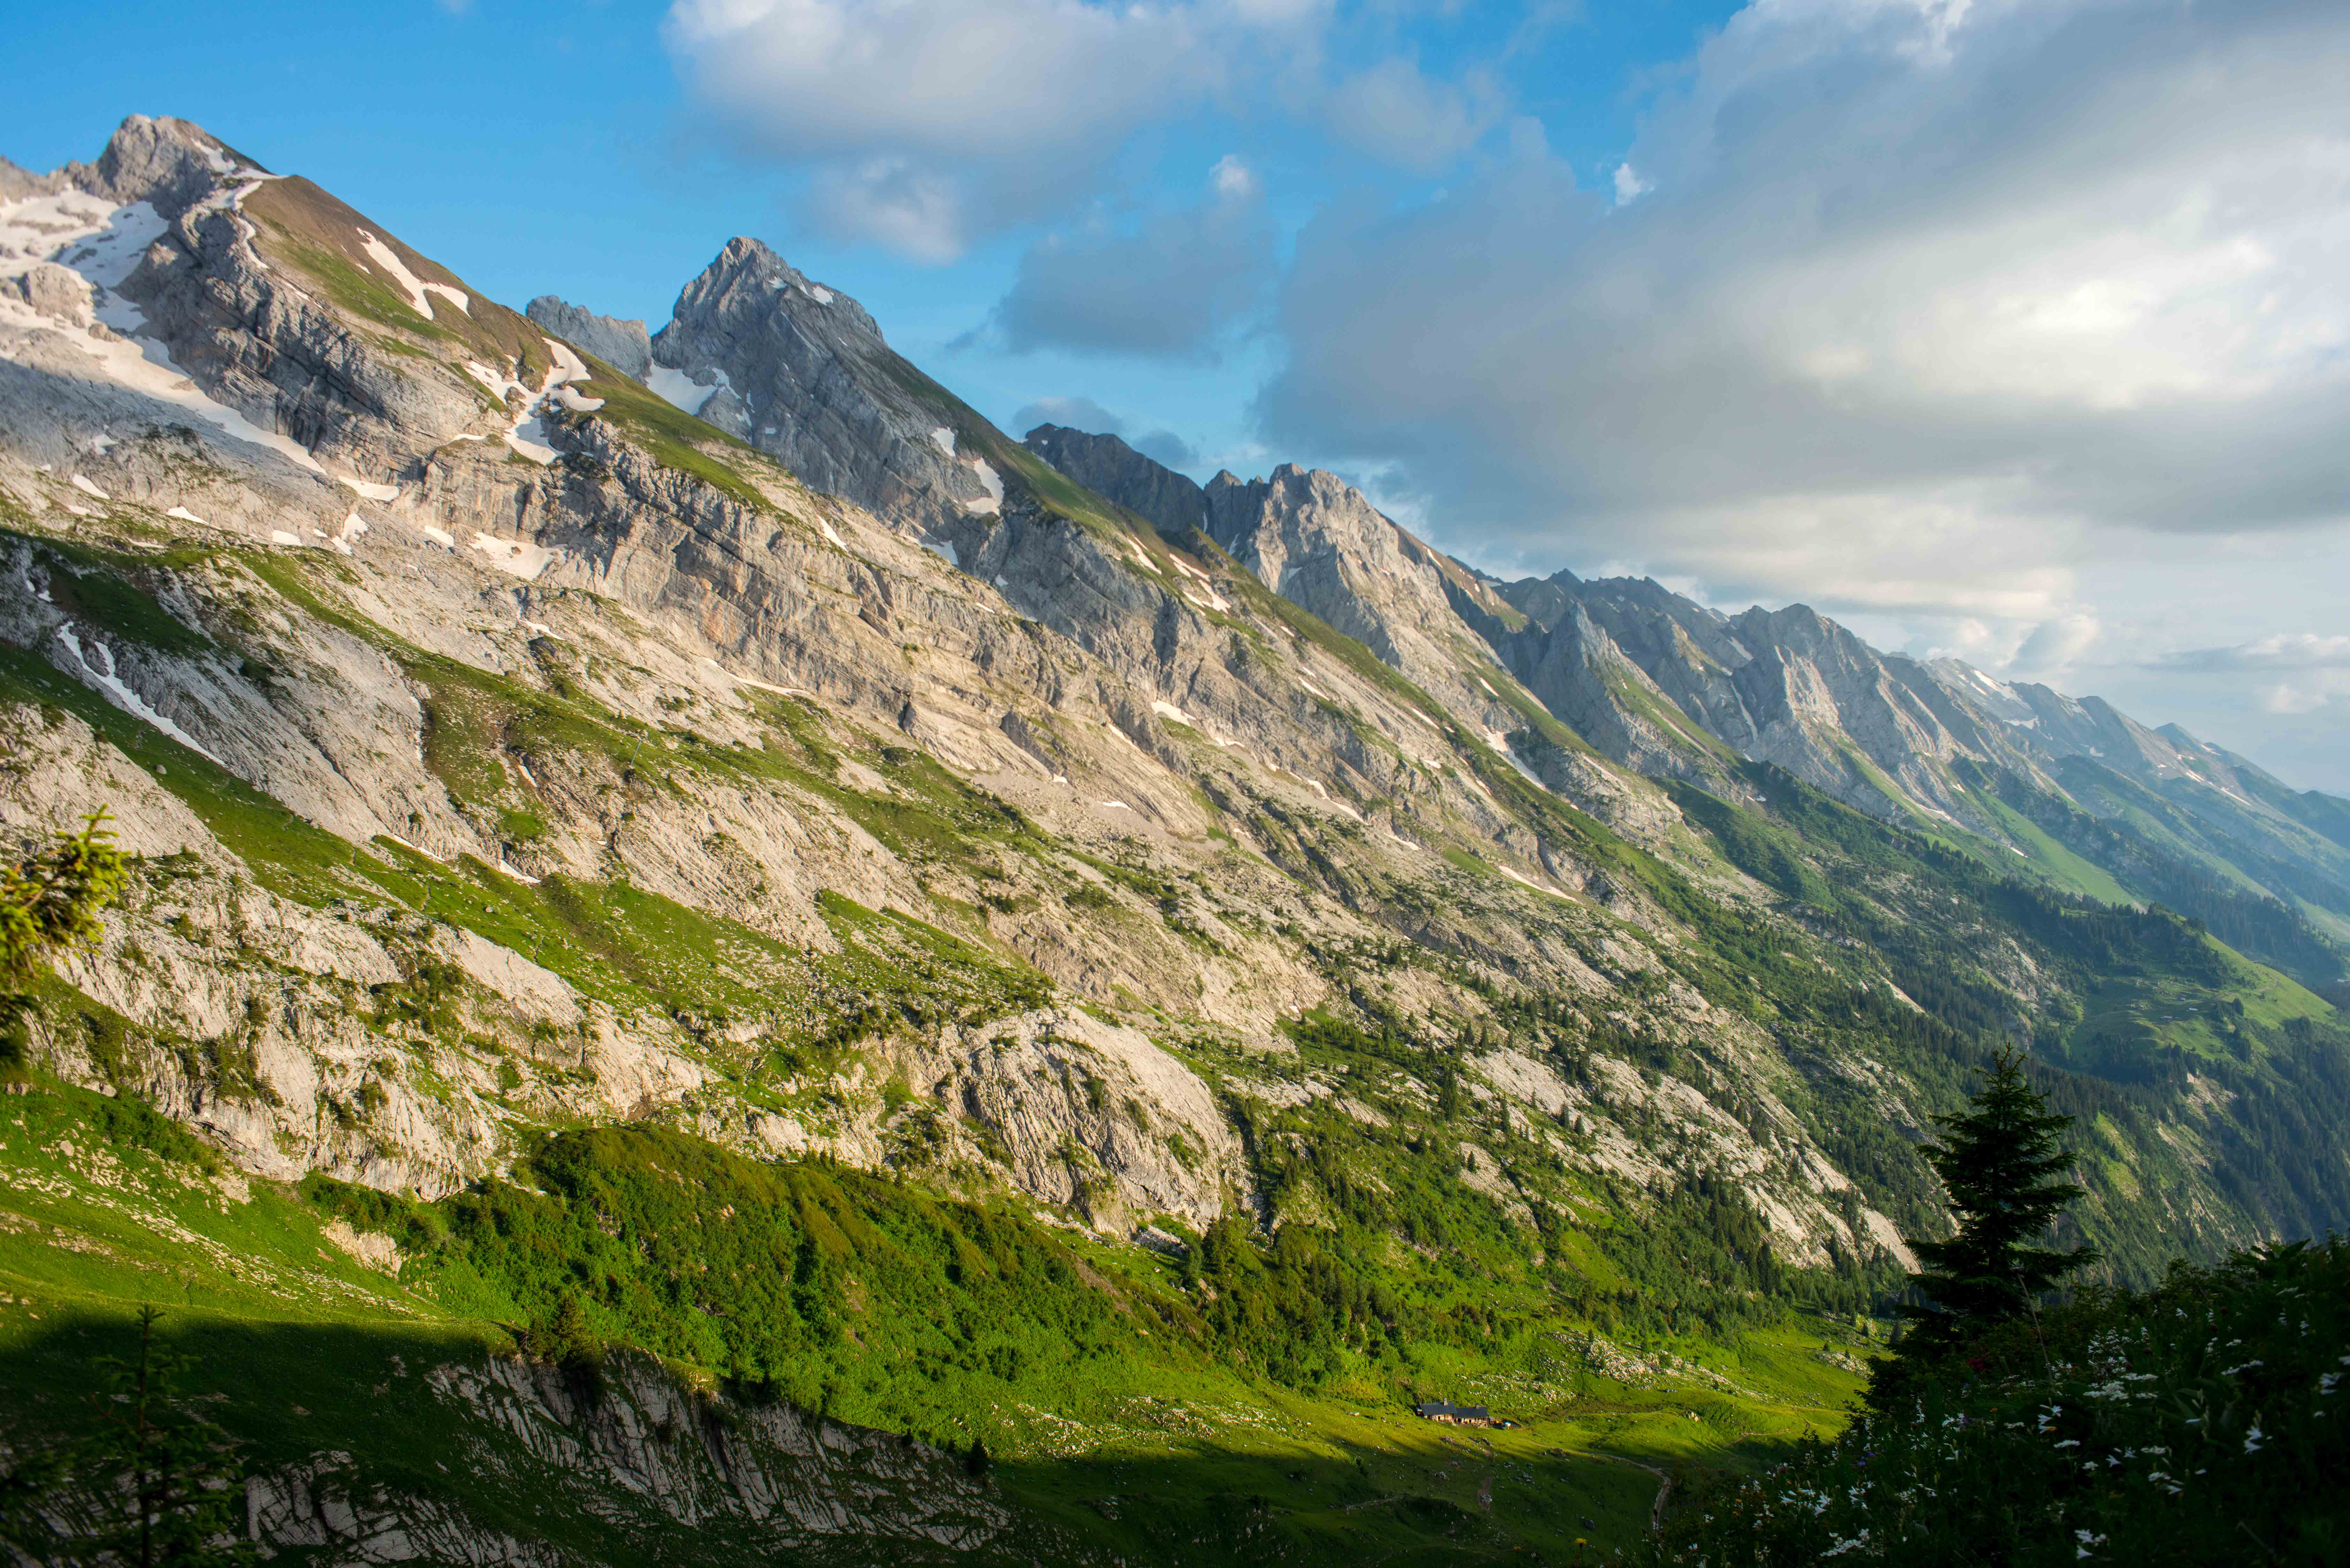 West side of the Aravis, June 2014